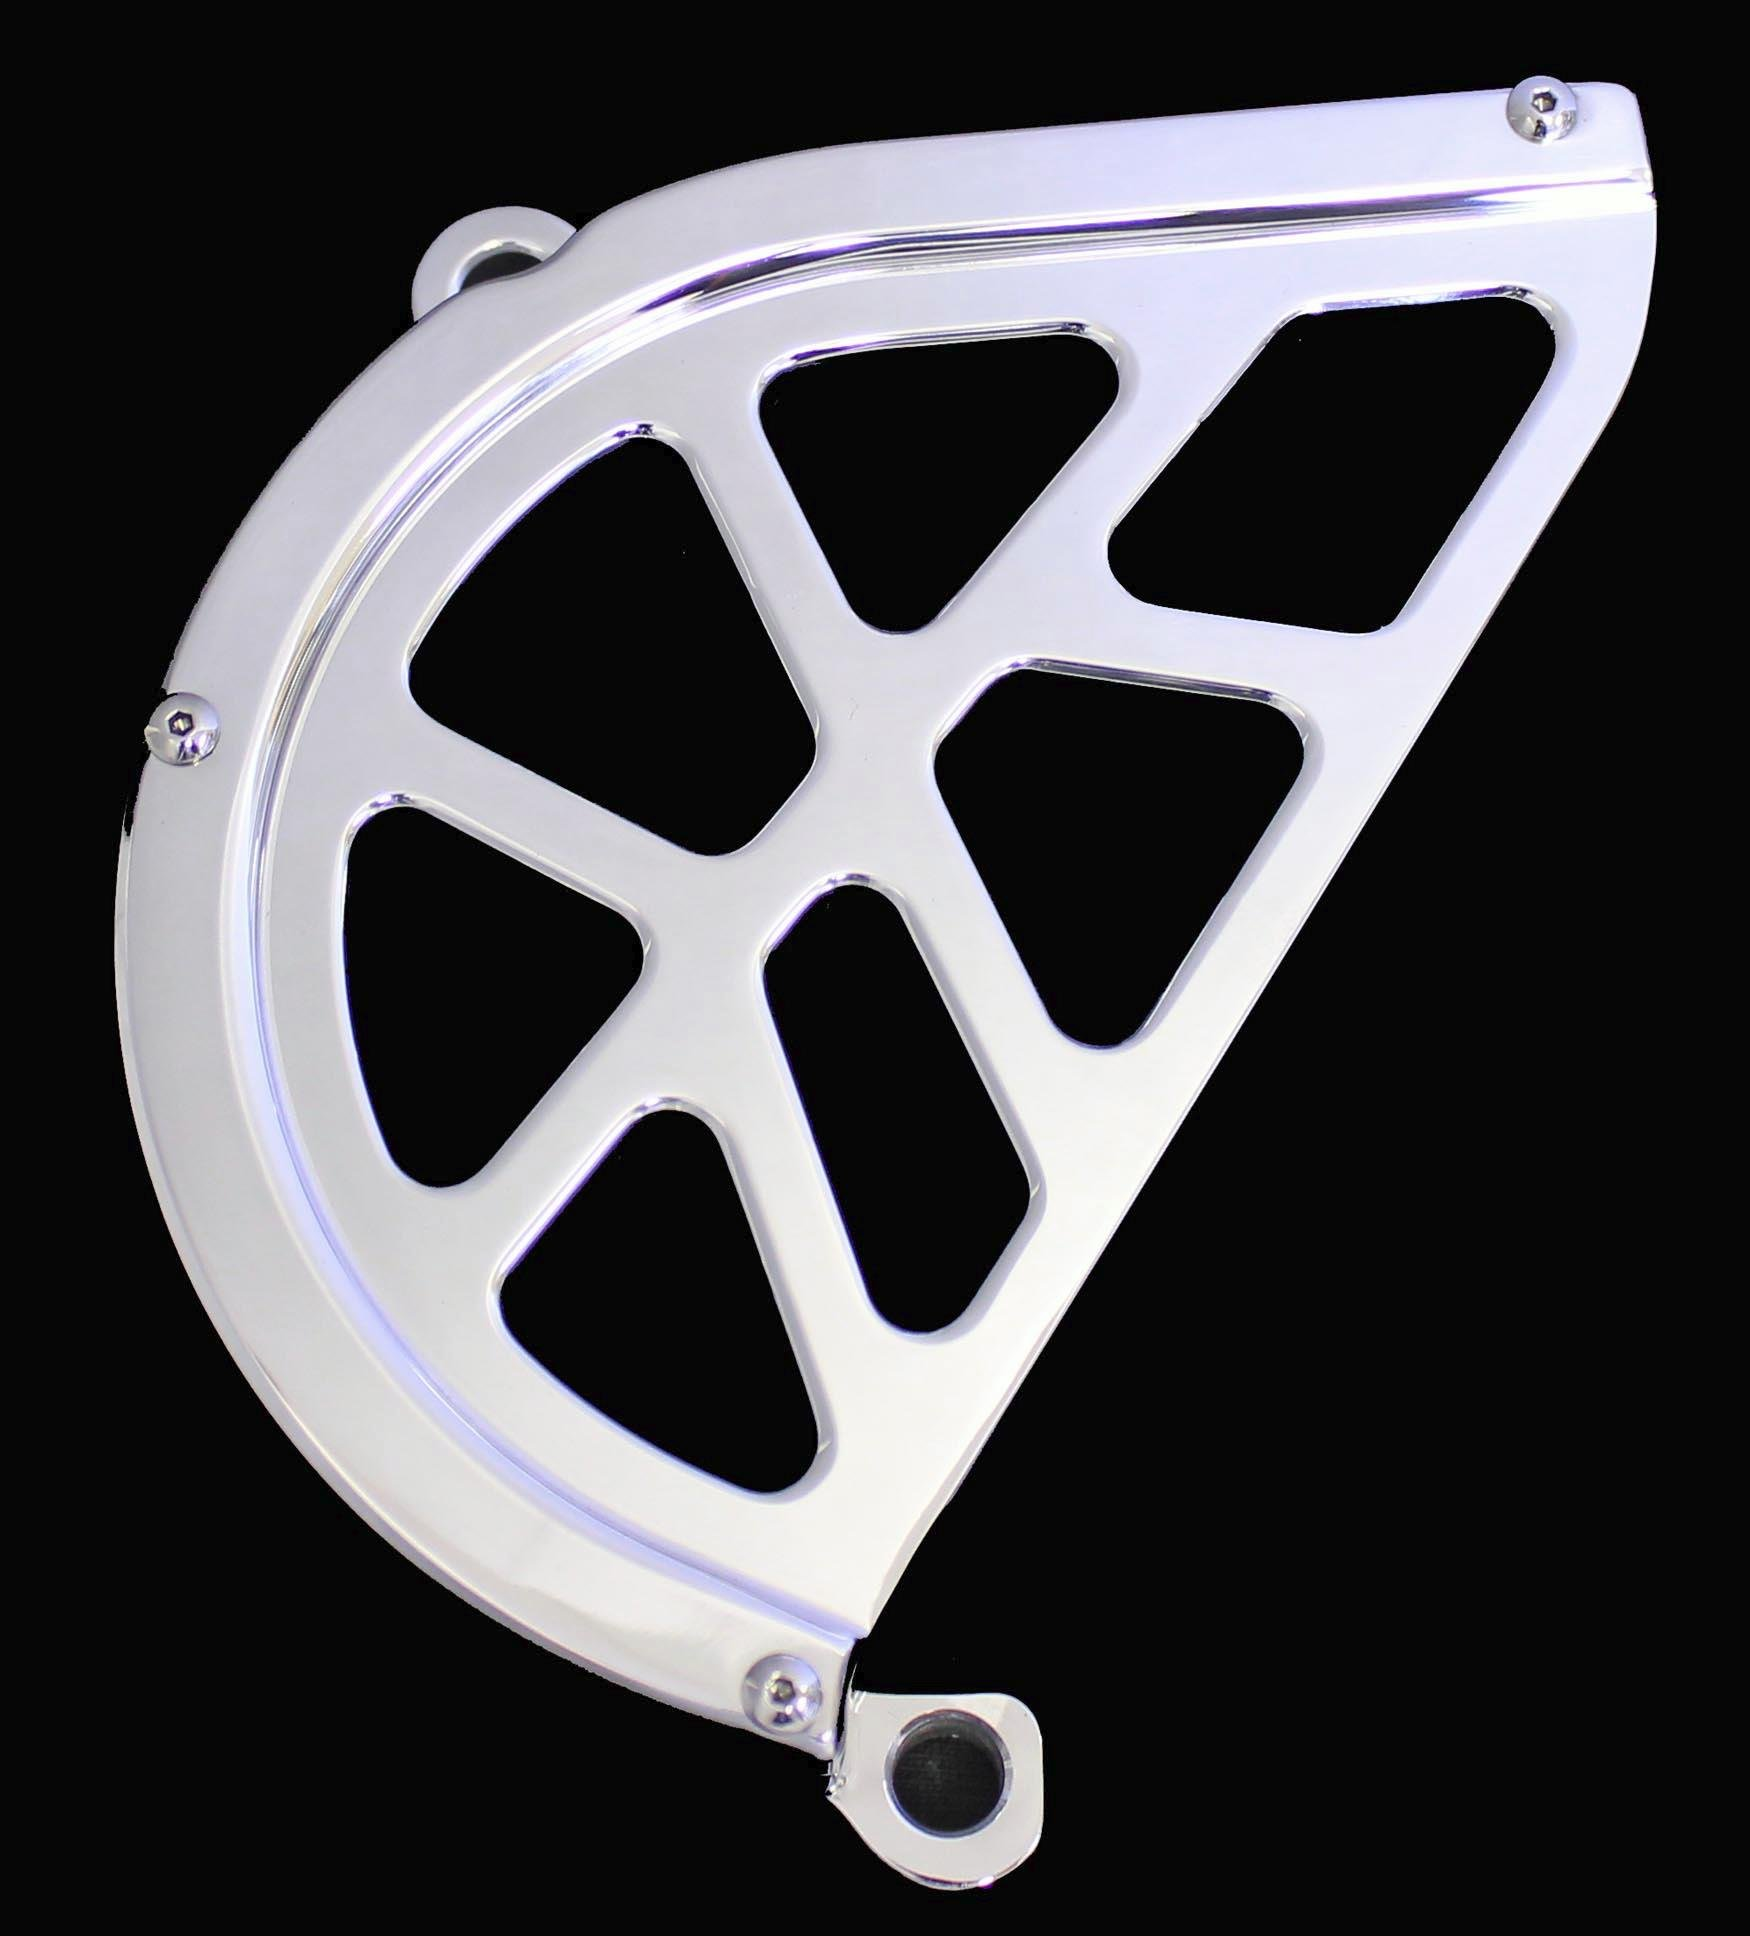 ModQuad Billet Polished Front Chain Guard for Yamaha 07-13 YFM700 Raptor (CG1-700-1) by Modquad